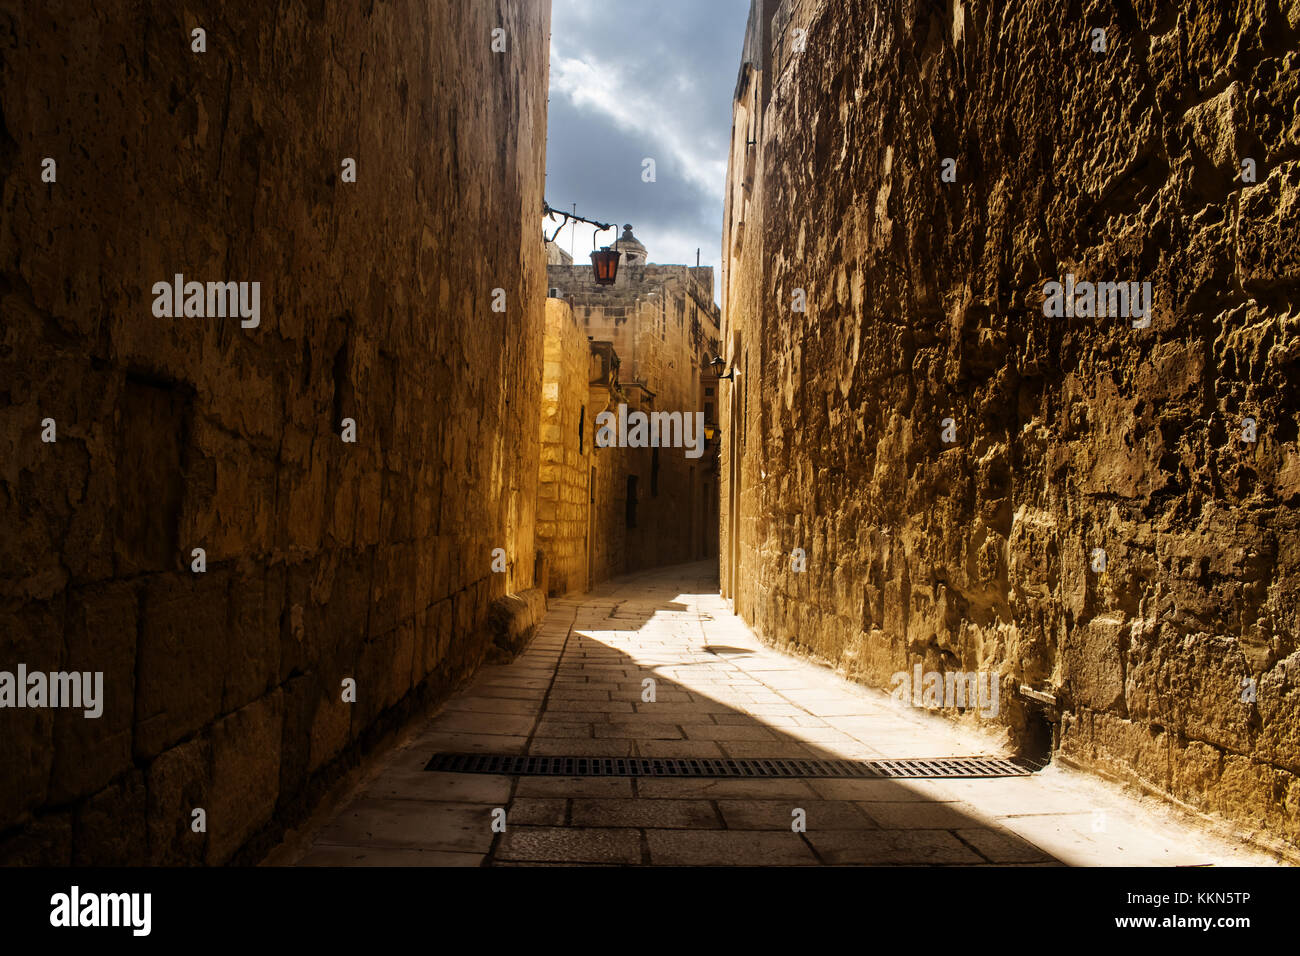 A typical and historic road in Mdina, Malta - Stock Image